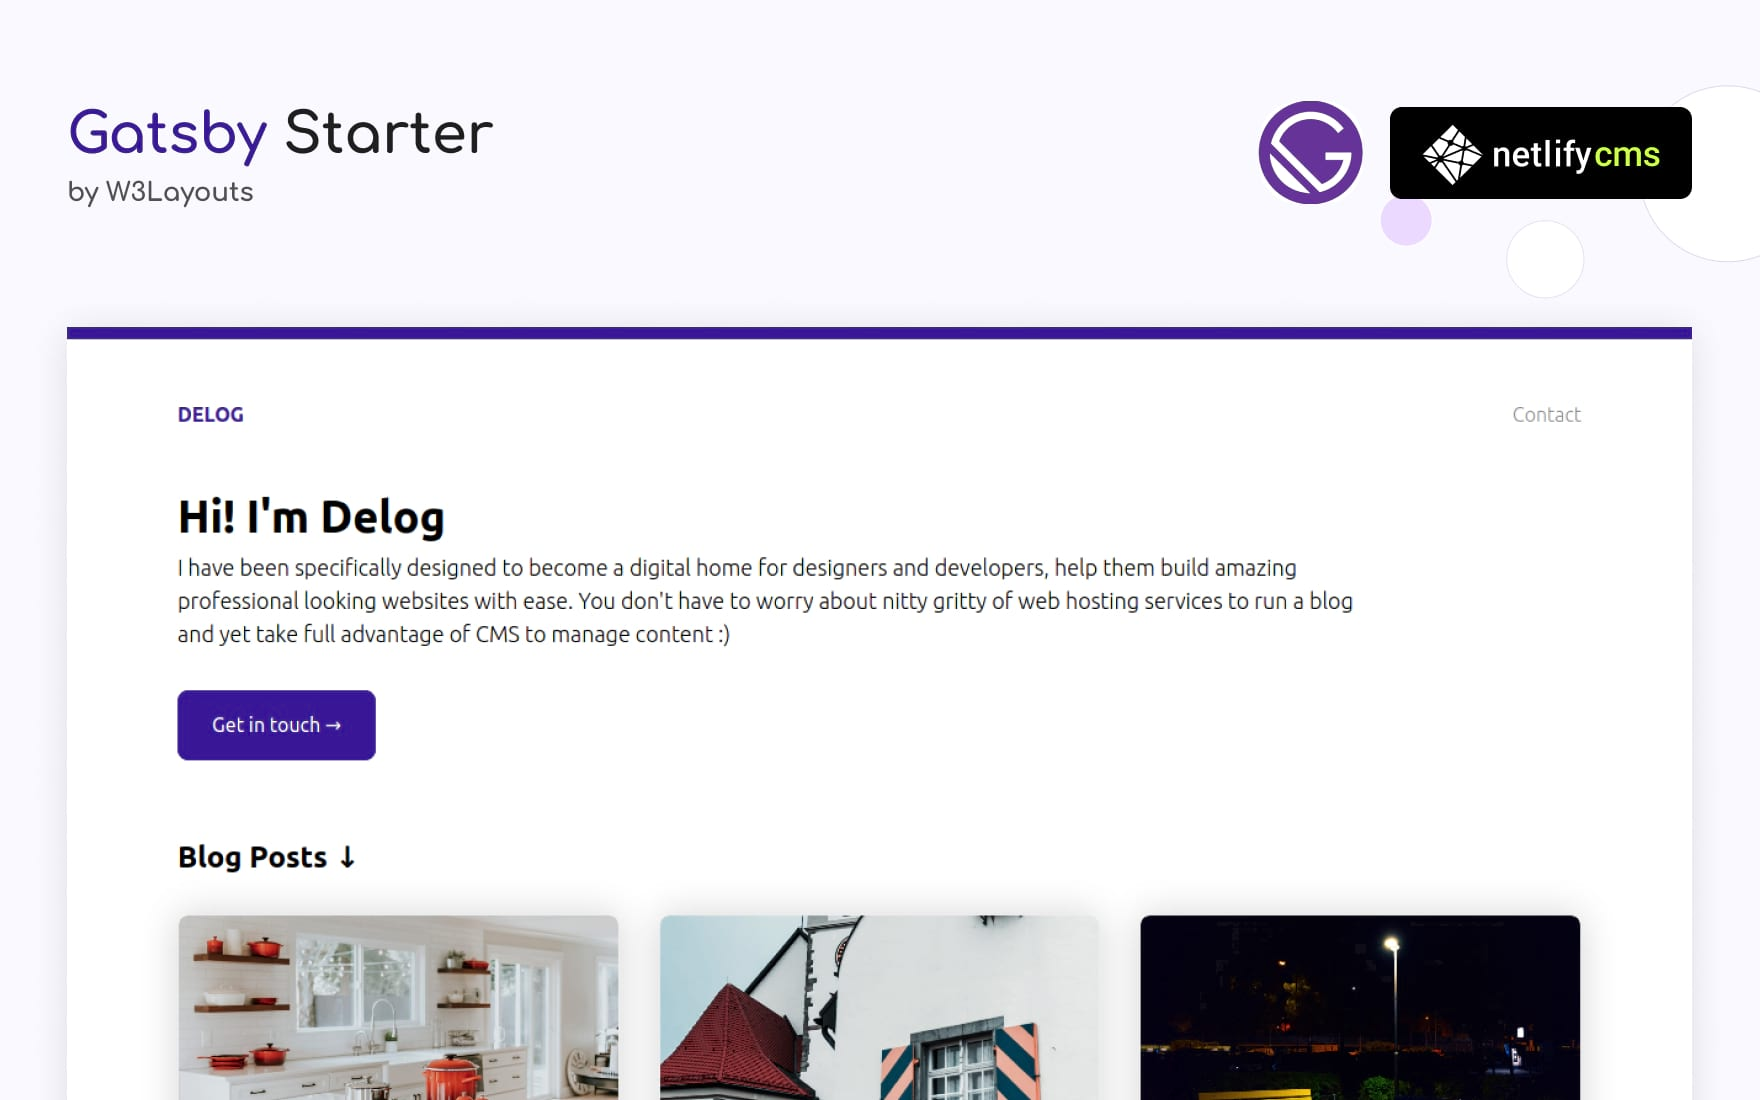 Delog — Gatsby Starter built with Netlify CMS